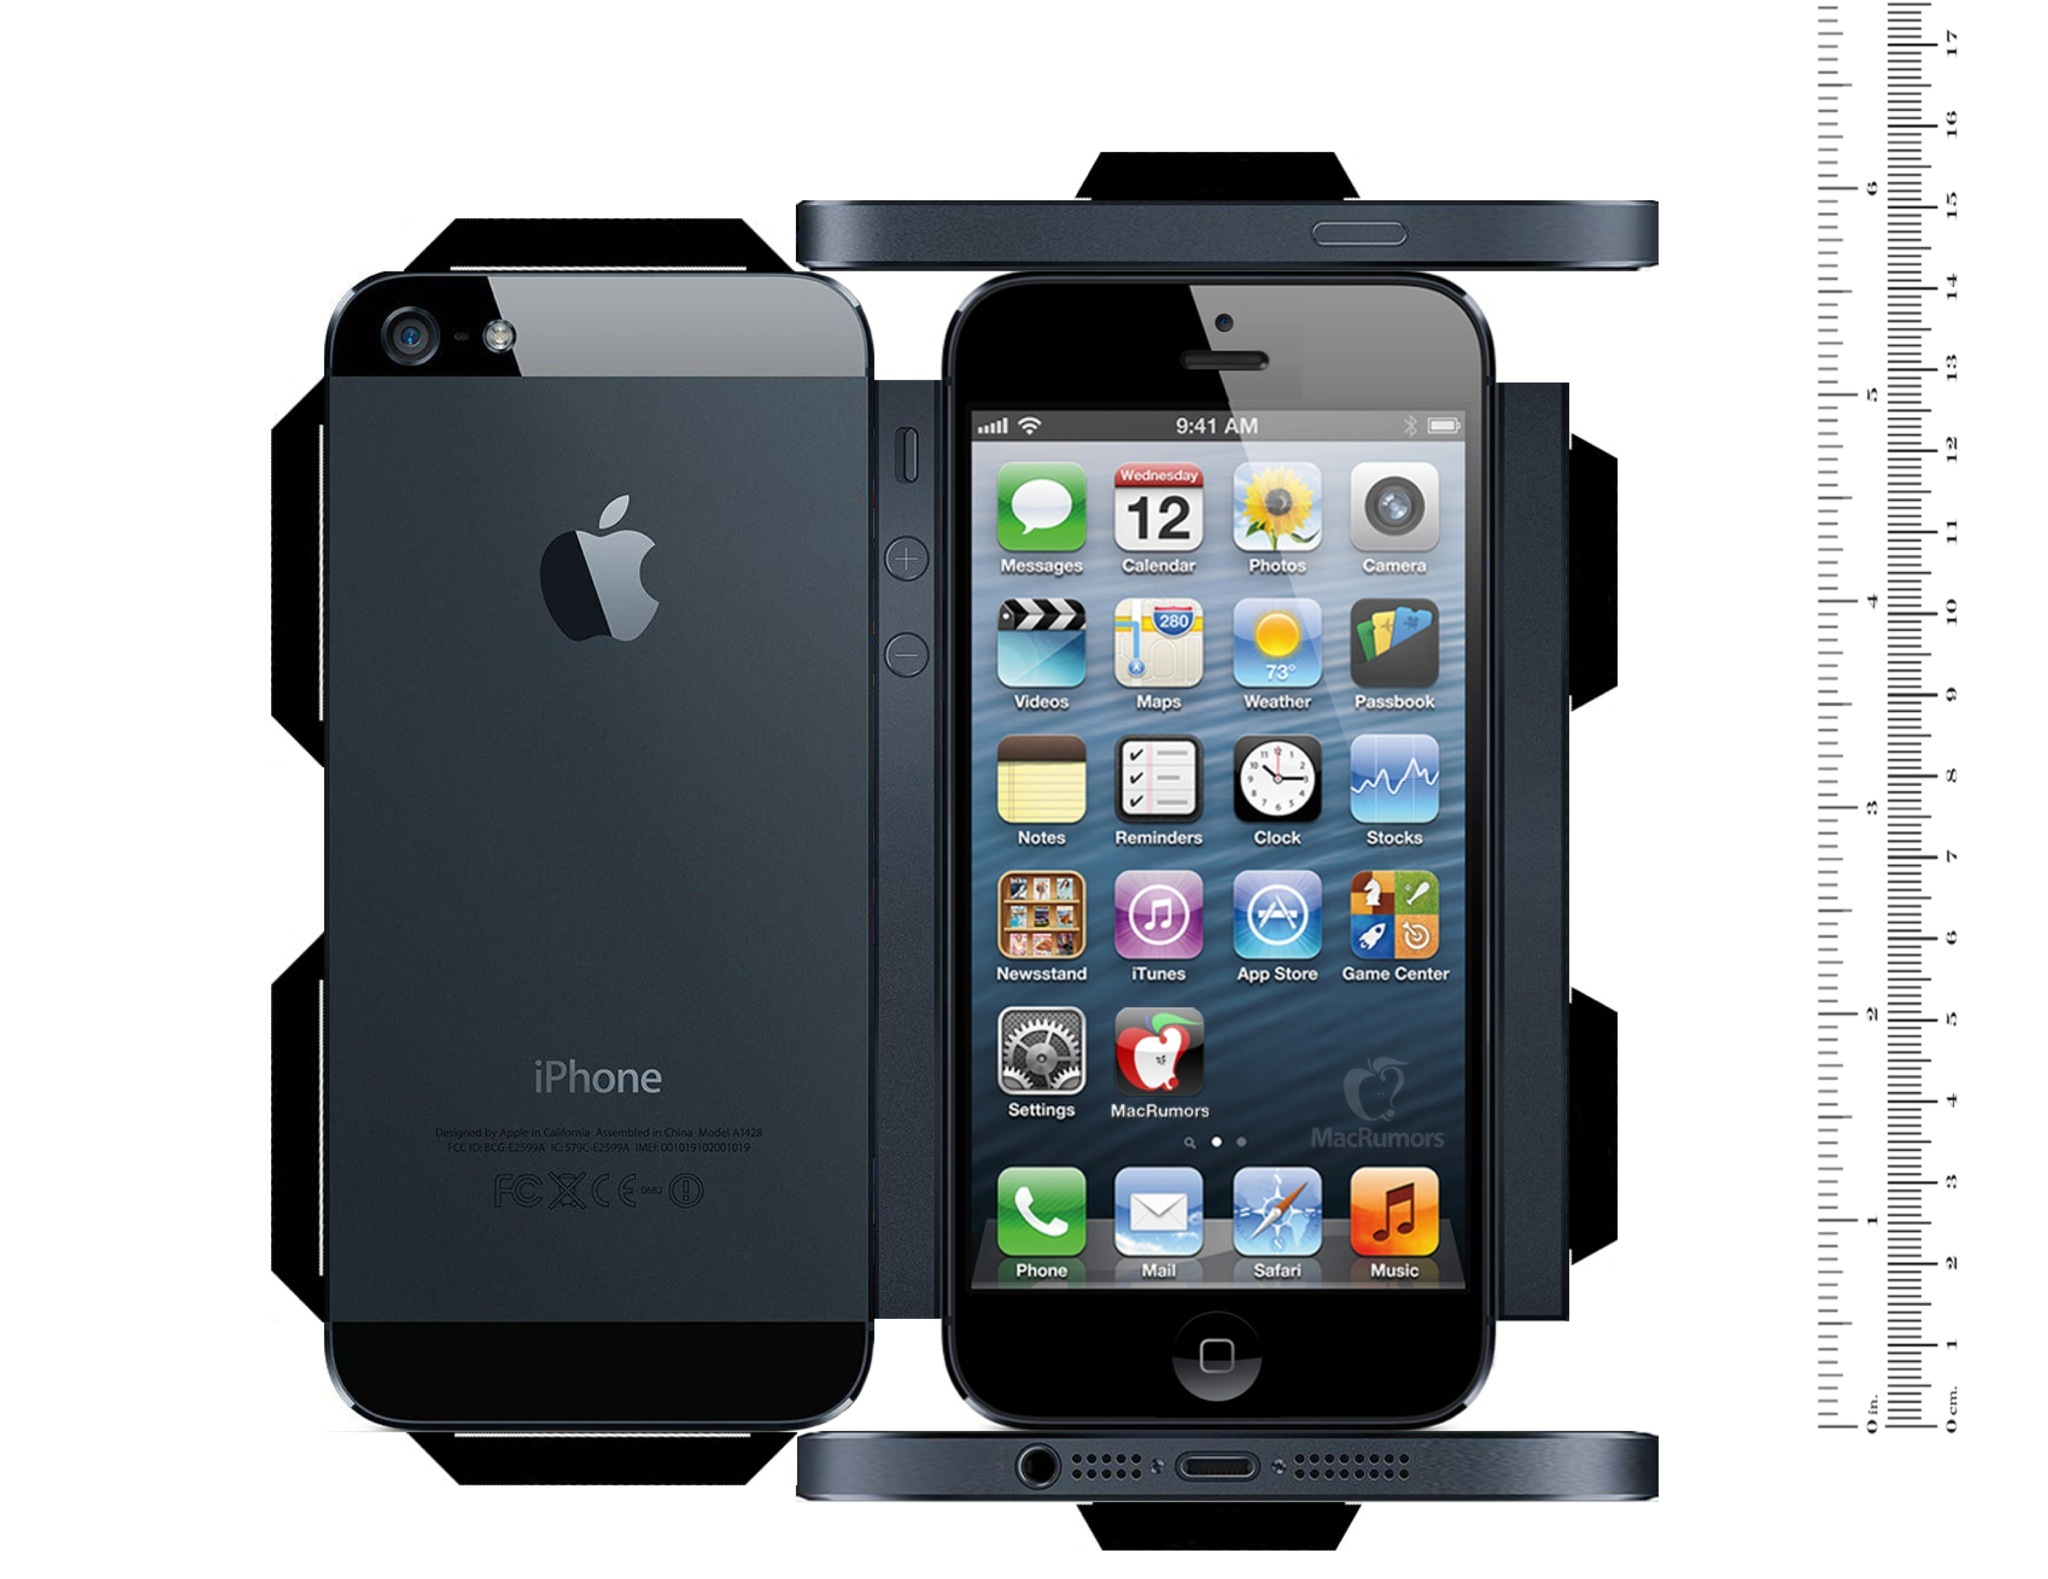 Papercraft five inch iPhone model (CiccareseDesign 001)